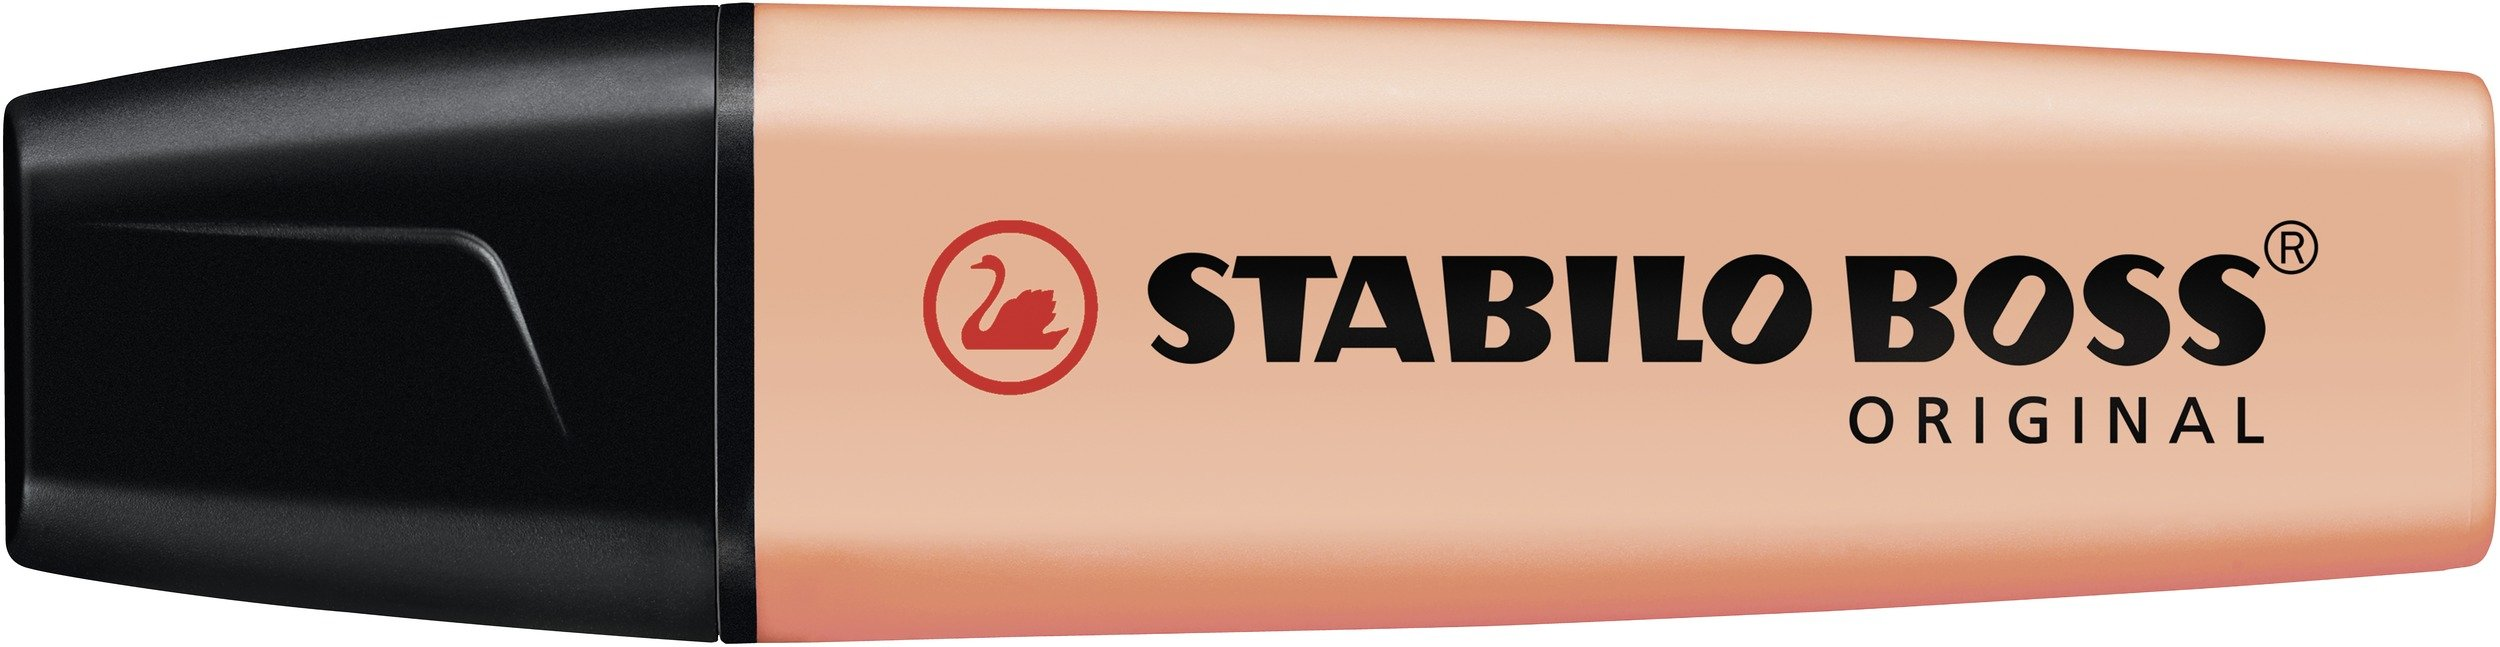 Stabilo Boss Original Highlighter Deskset of 15 Assorted Colours - Limited Edition by Stablio (Image #5)